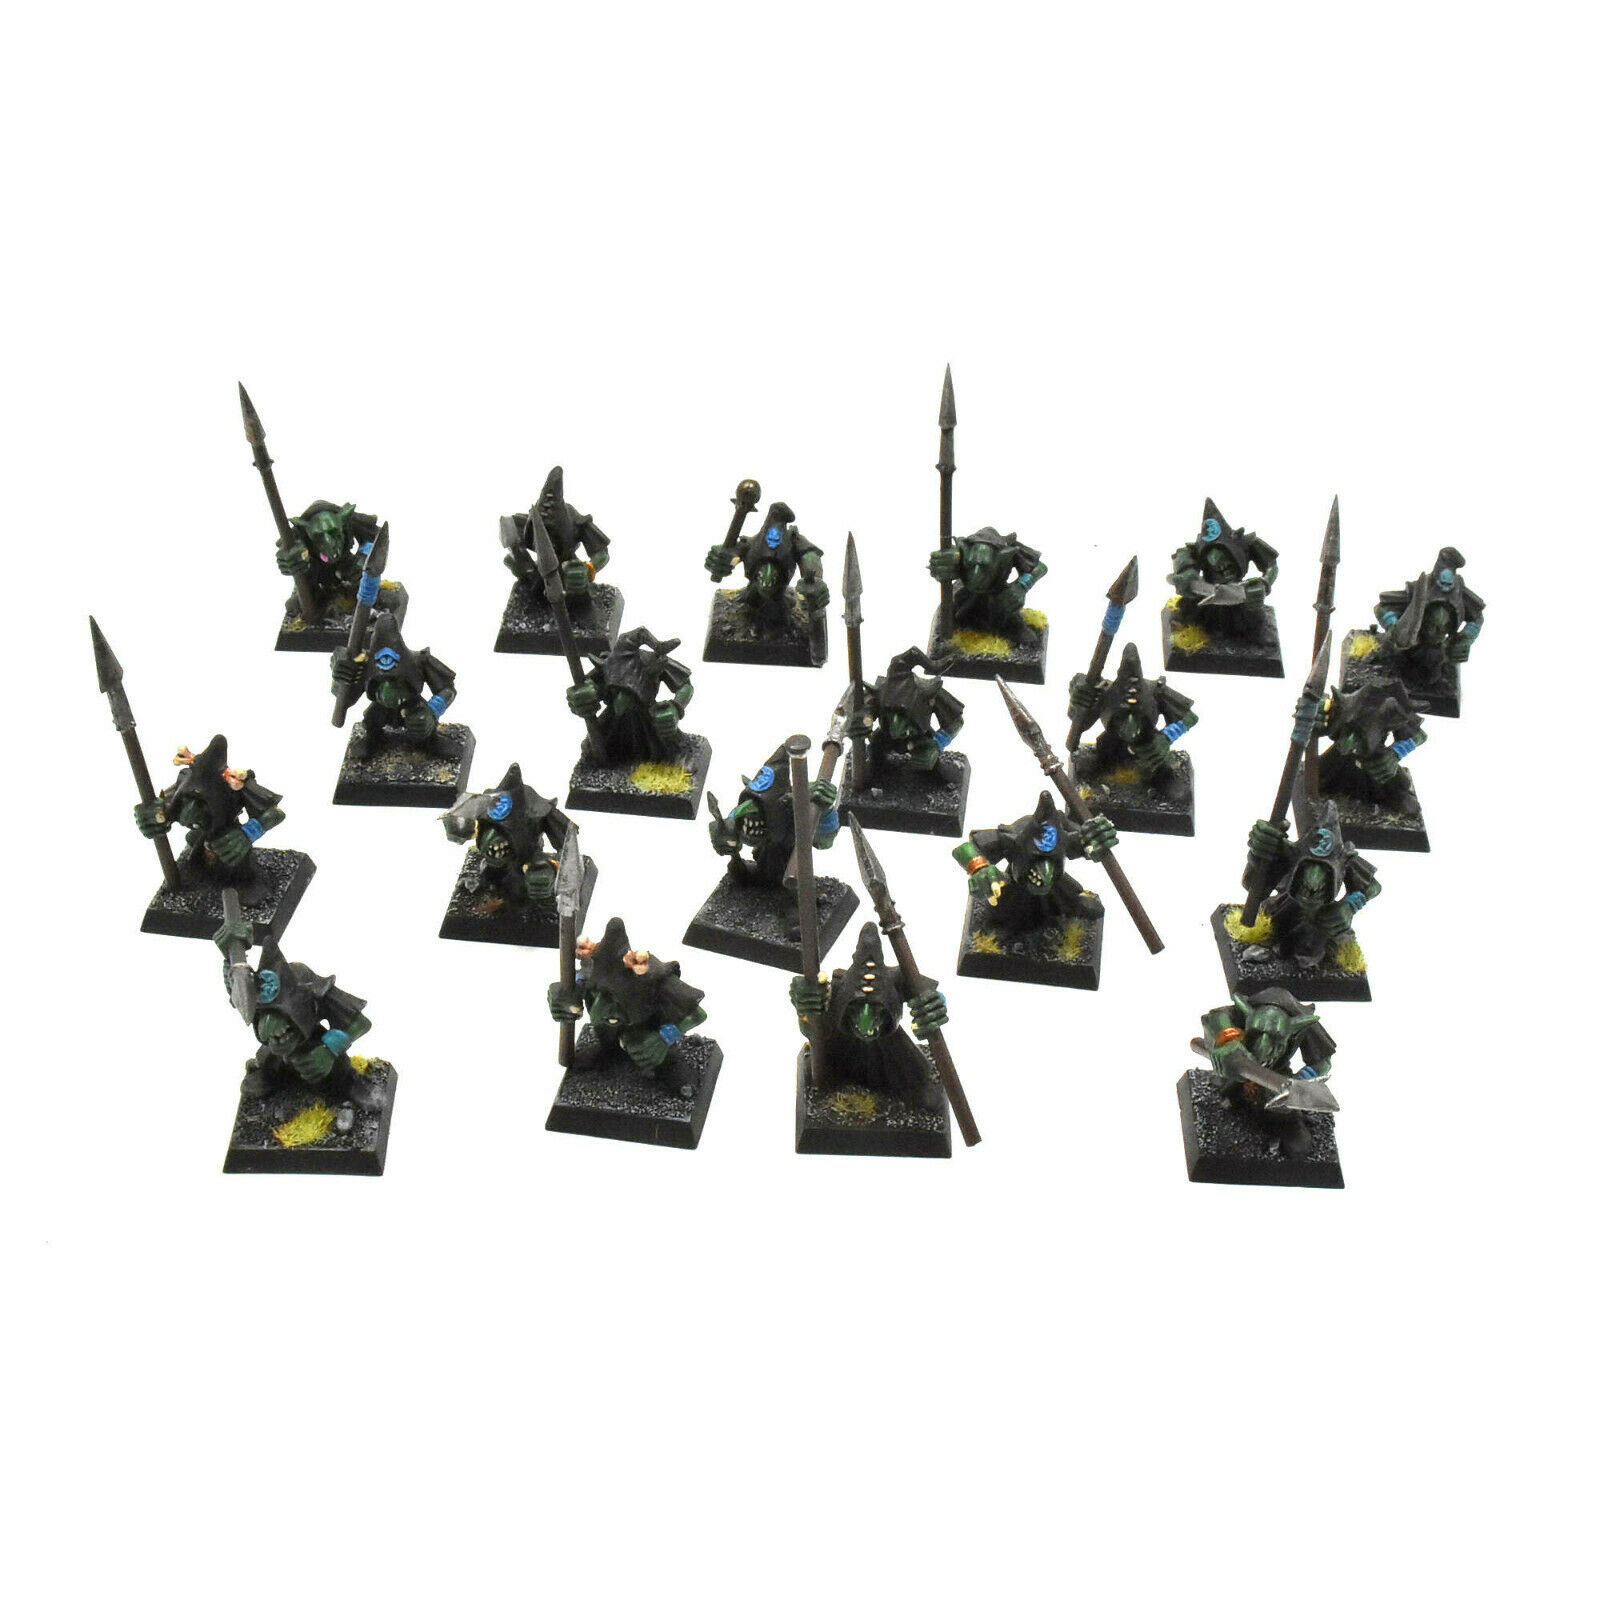 ORCS & GOBLINS 20 night grots with bows  3 Fantasy PRO PAINTED gloomspite gitz